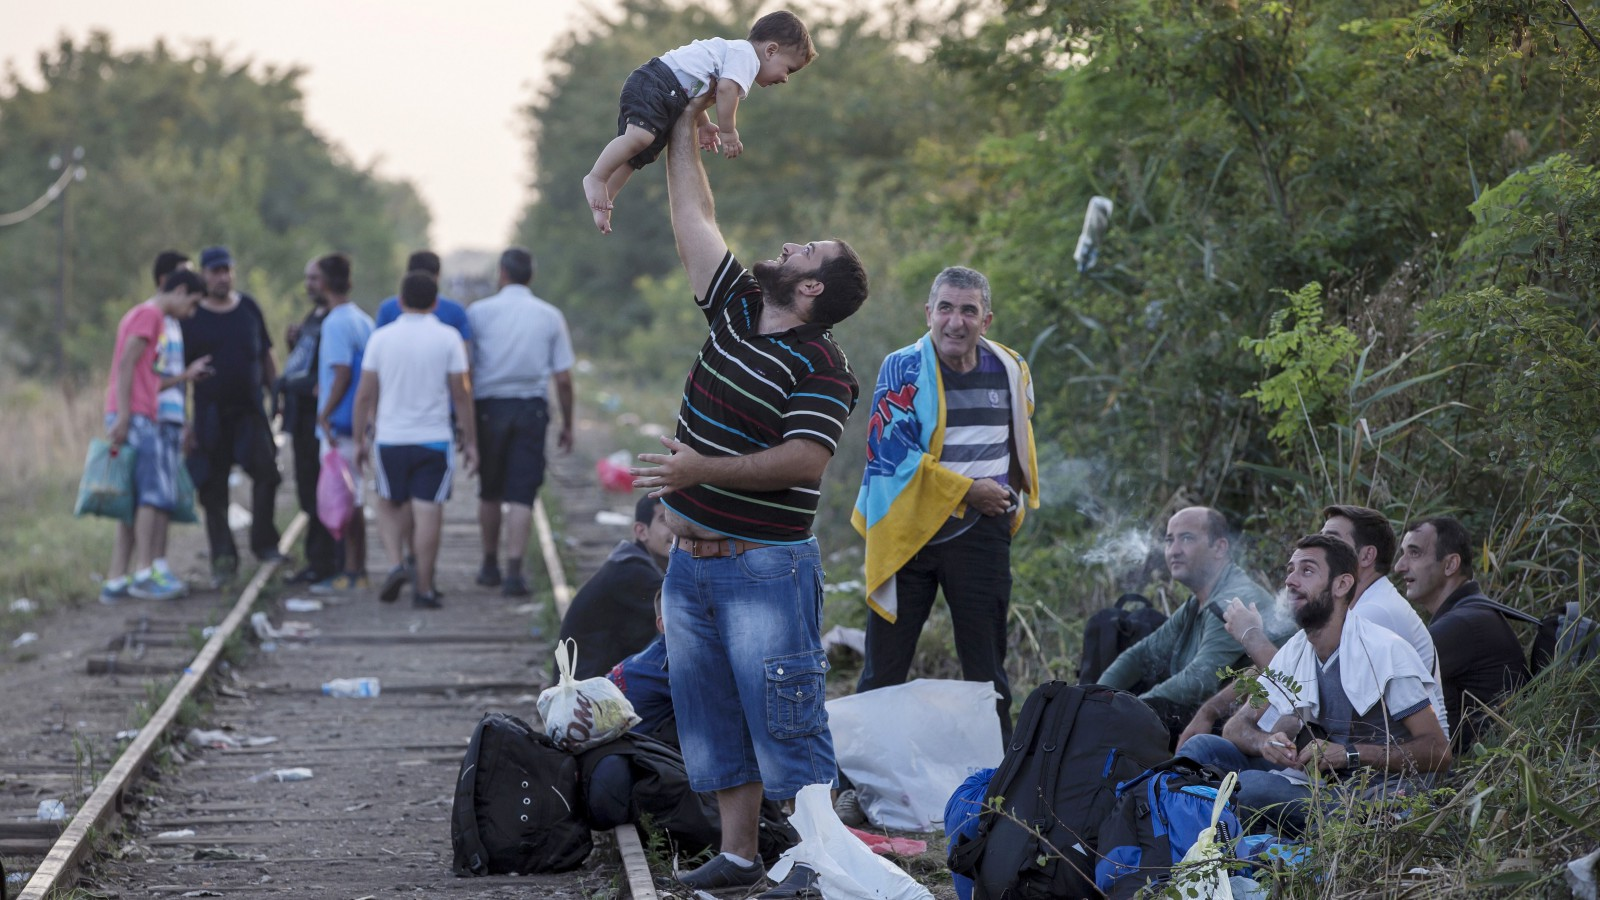 """A migrant, hoping to cross into Hungary, plays with a child along a railway track outside the village of Horgos in Serbia, towards the border it shares with Hungary, August 31, 2015. The European Union could soon fund and set up new reception facilities for asylum-seekers in Hungary as it is already doing in Italy and Greece, its migration commissioner said on Monday. Saying he would travel to Budapest soon, Dimitris Avramopoulos told reporters that the EU executive was ready to offer further help to the government as it takes in large numbers of people crossing the Balkans to reach the European Union and would """"if necessary, set up a hotspot in Hungary"""". REUTERS/Marko Djurica  TPX IMAGES OF THE DAY      - RTX1QHD8"""